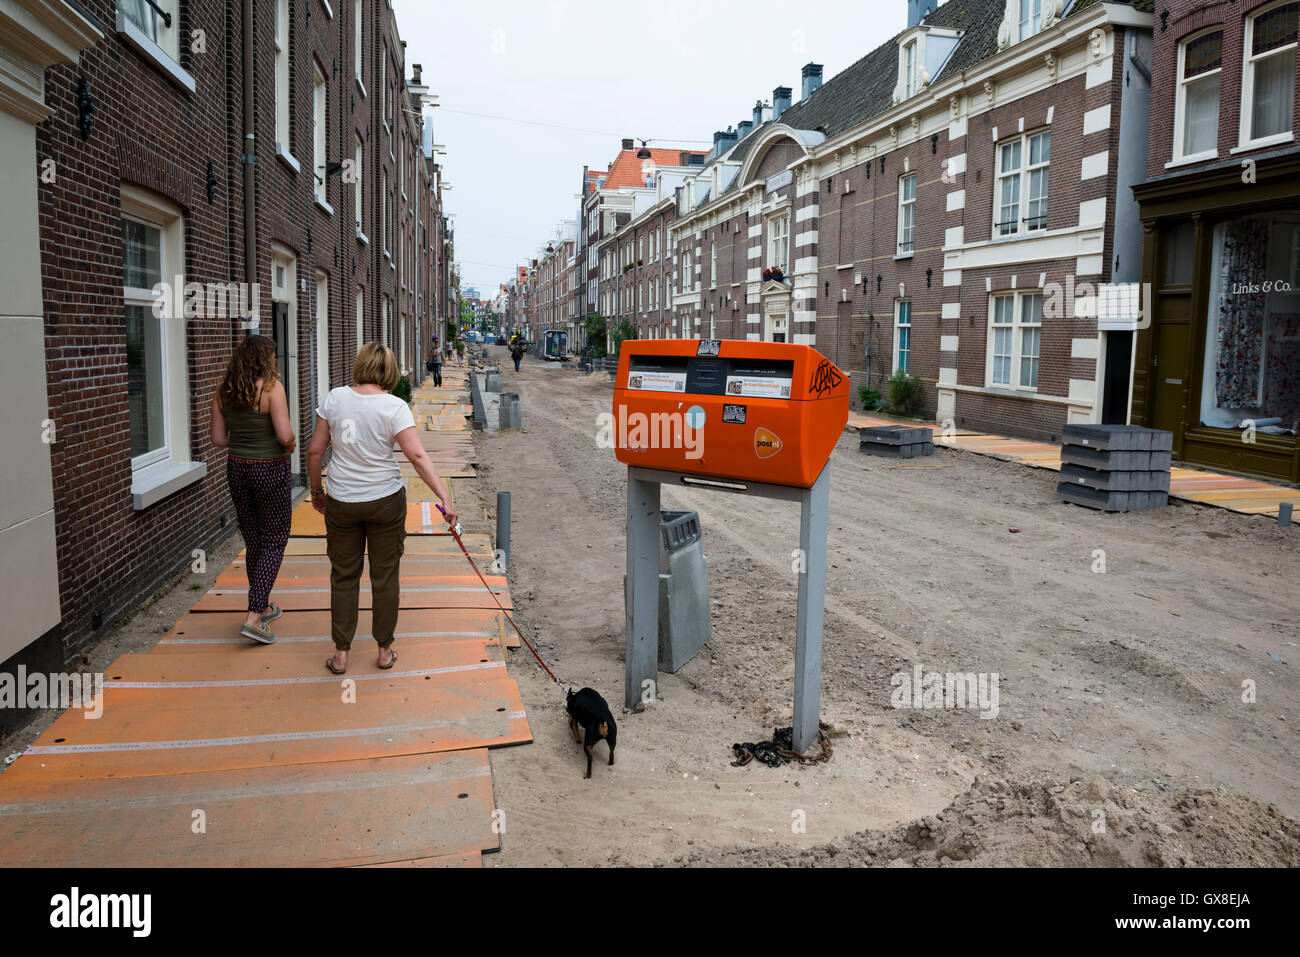 Repaving and constructing of the Willemstraat in the Jordaan neighbourhood. Part of a long term urban renewal programm. - Stock Image